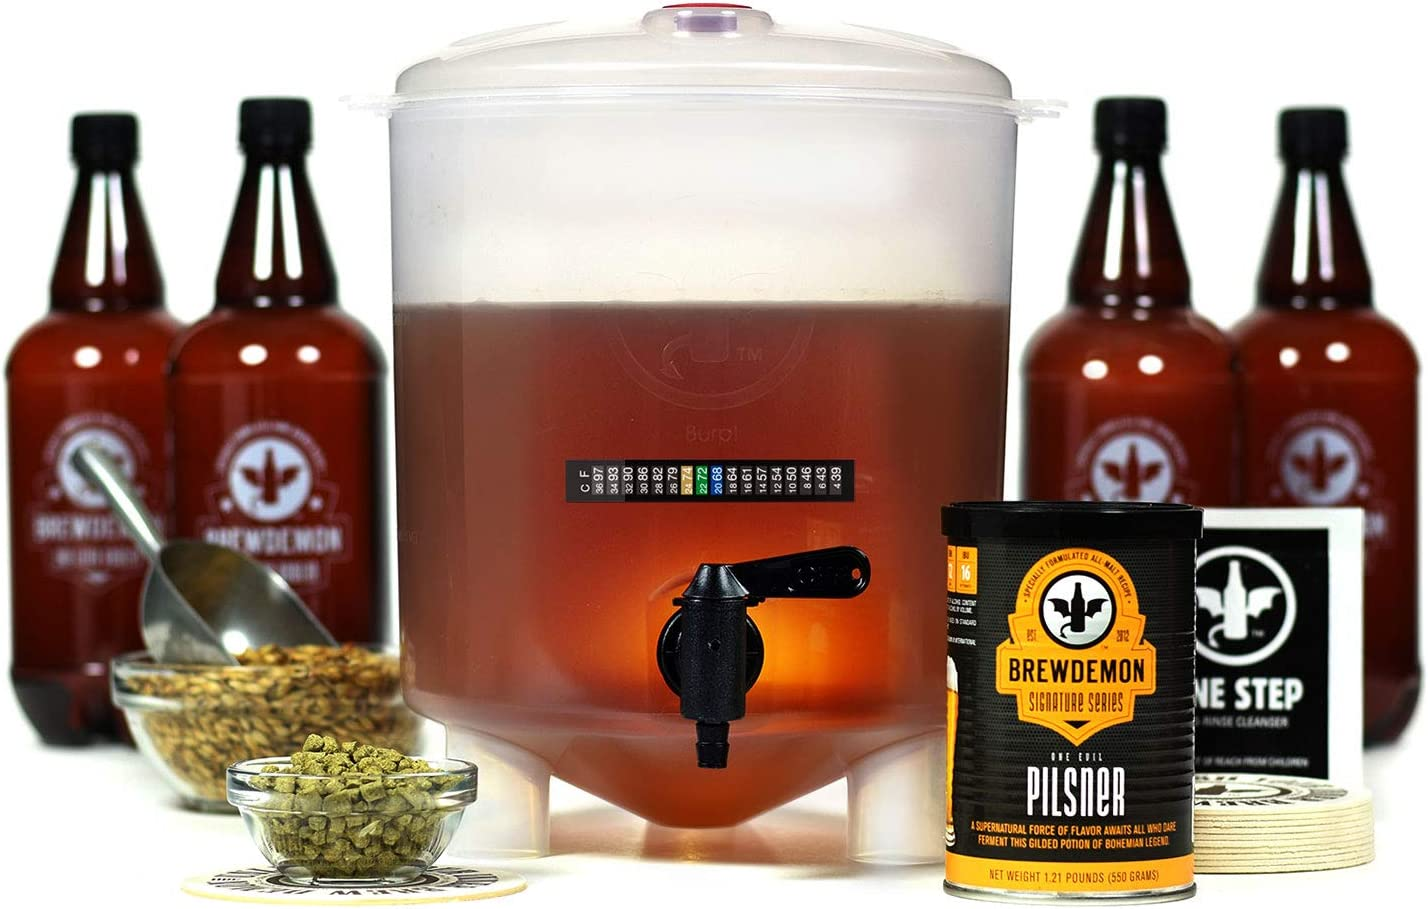 BrewDemon Craft Beer Kit with Bottles - Conical Fermenter Eliminates Sediment and Makes Great Tasting Home Made Beer - 1 gallon pilsner